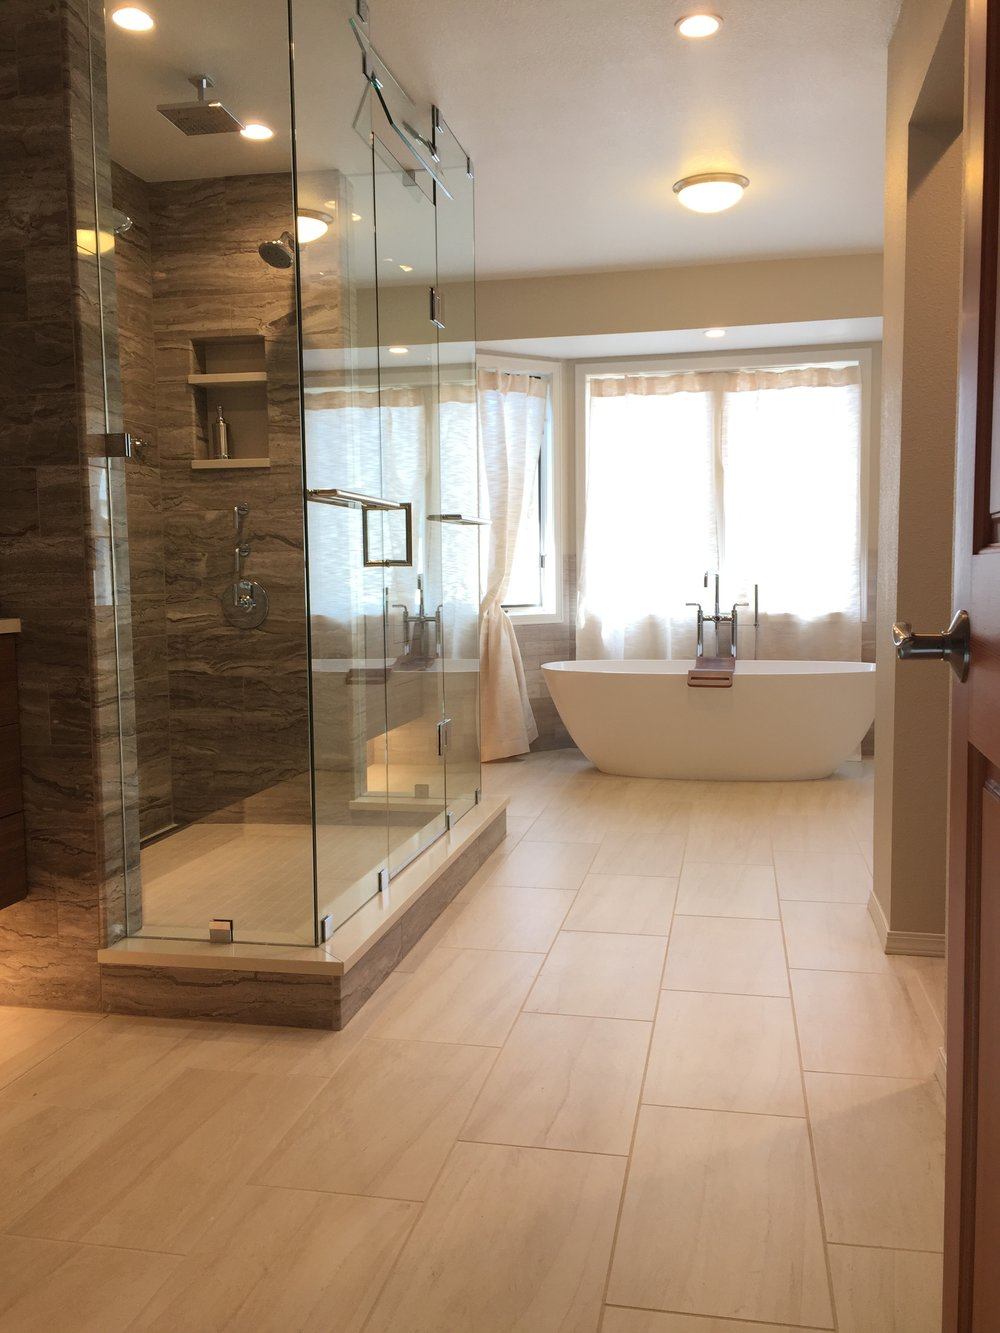 Nearly Complete in Boulder! — sanctuary kitchen and bath design